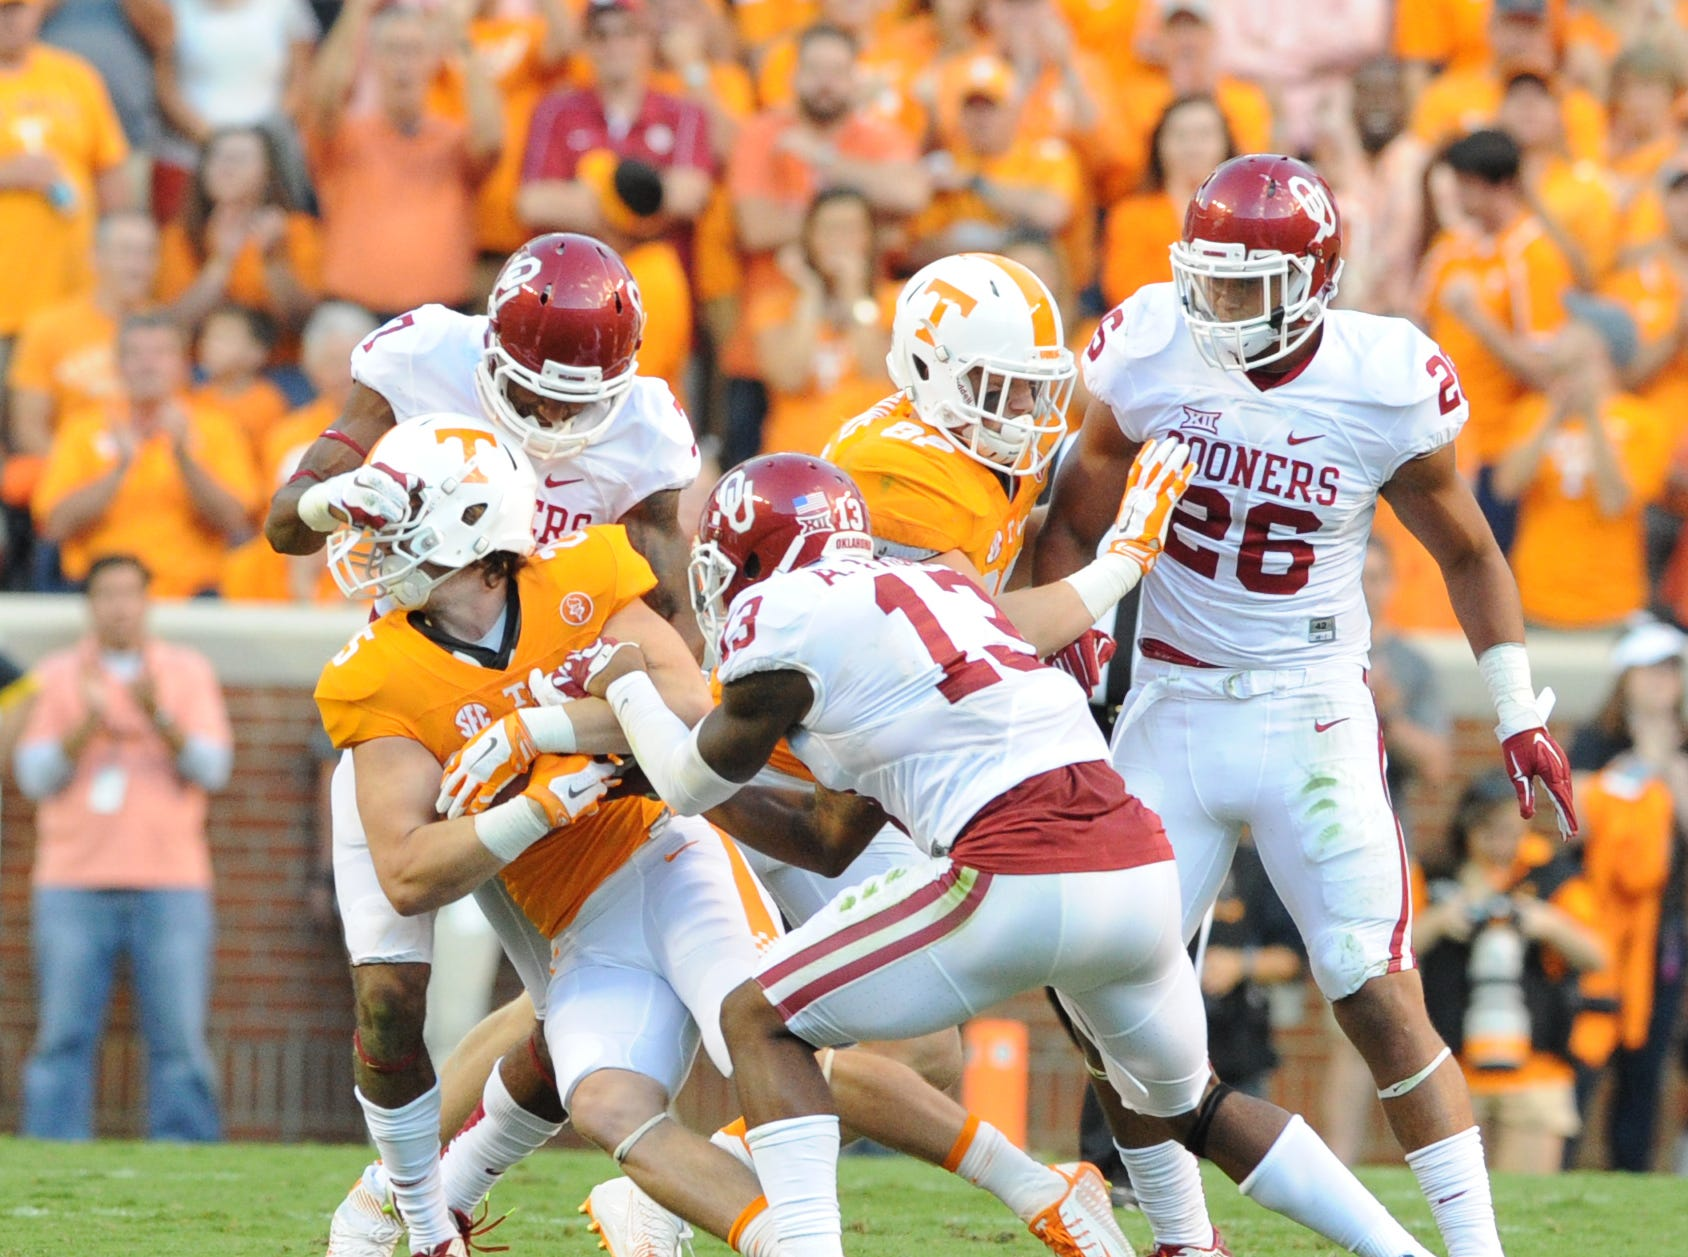 Tennessee wide receiver Josh Smith (25) is pressured by Oklahoma defenders Jordan Thomas (7) and Ahmad Thomas (13) during the first half at Neyland Stadium on Saturday, Sept. 12, 2015 in Knoxville, Tenn.